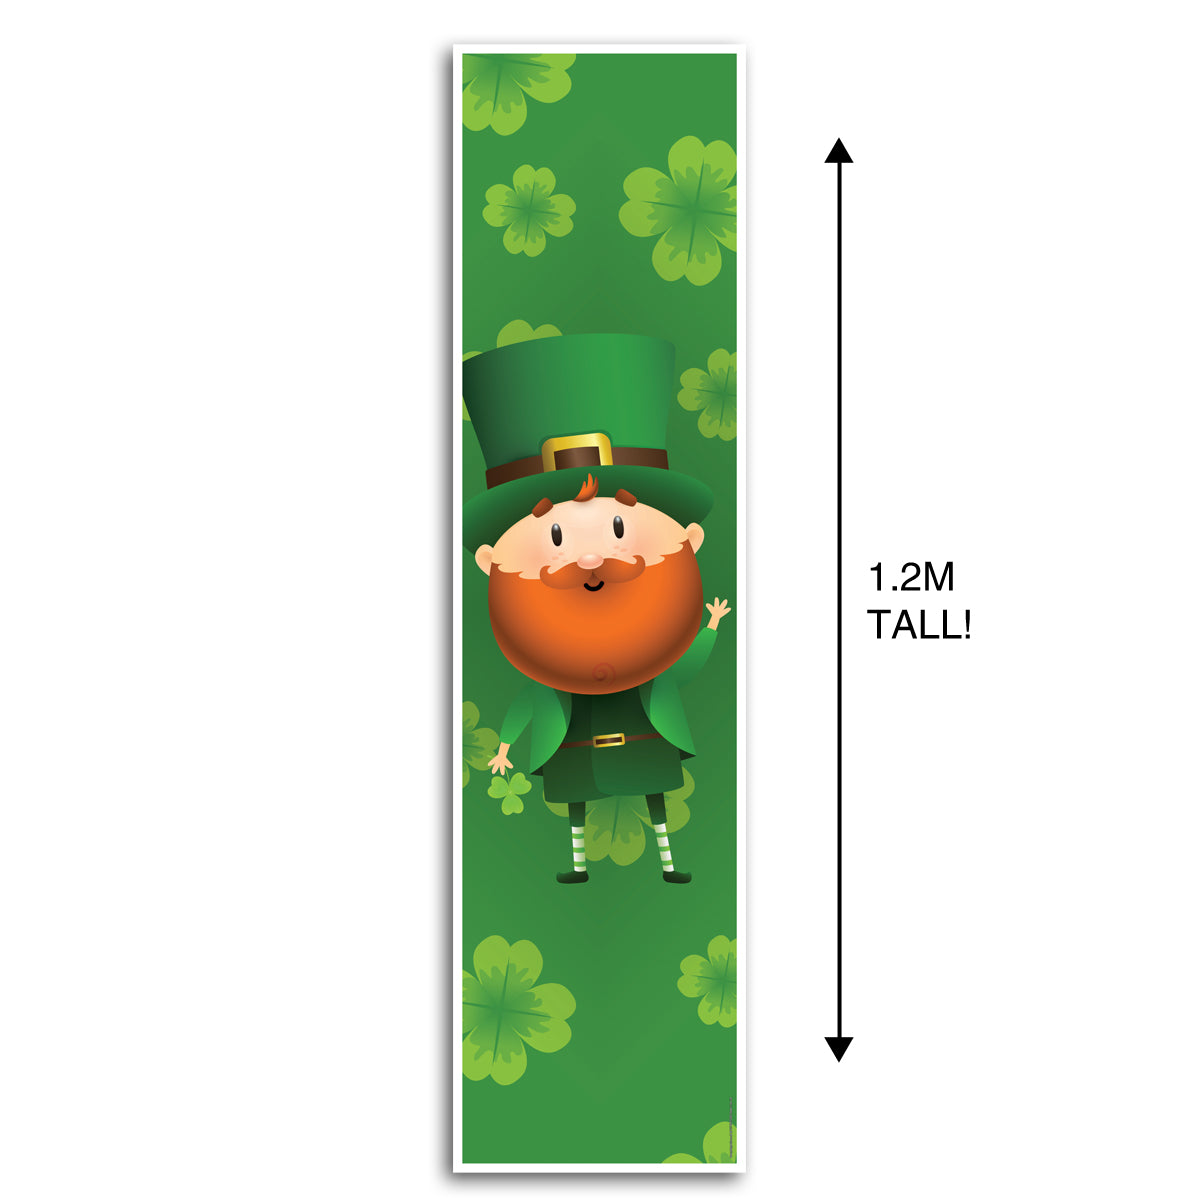 Leprechaun Lucky Shamrocks St. Patrick's Day Portrait Wall Banner Decoration - 1.2m